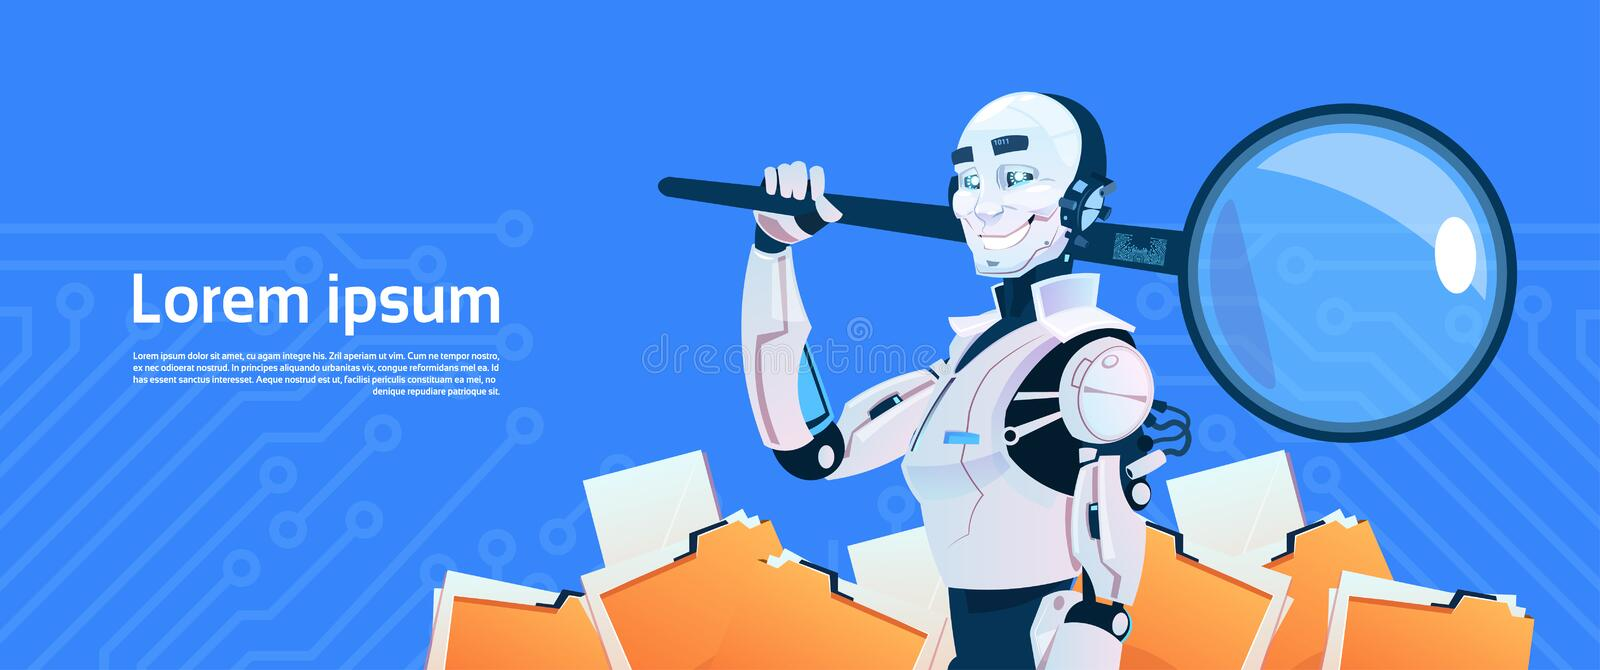 Modern Robot Hold Magnifying Glass Data Search Concept, Futuristic Artificial Intelligence Mechanism Technology. Flat Vector Illustration royalty free illustration